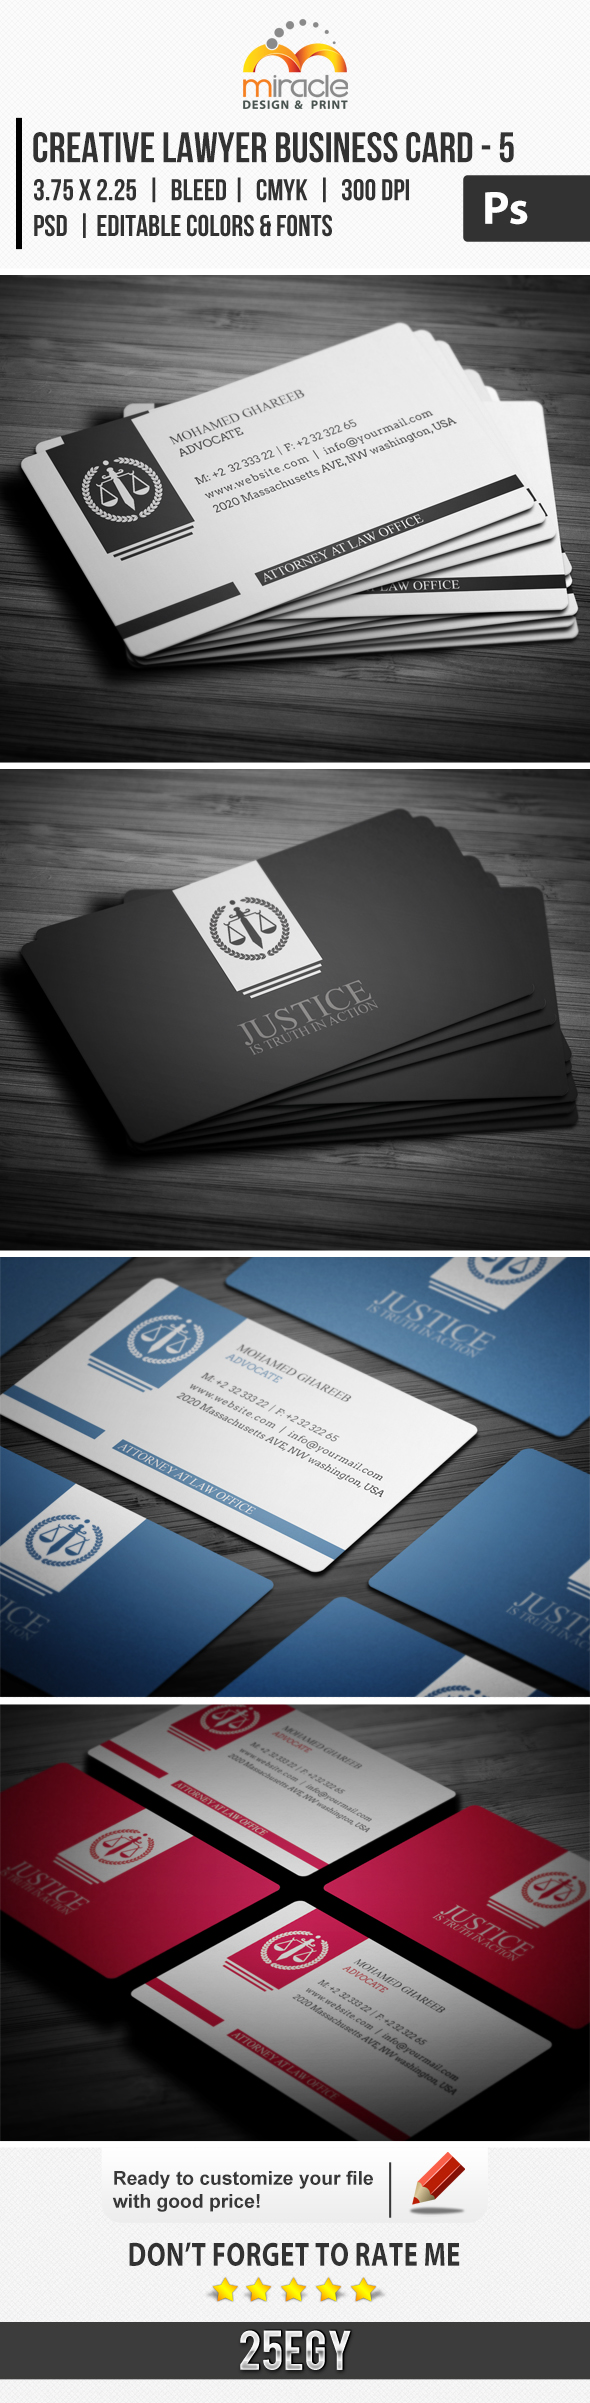 Pin By Argi On Interesting Pinterest Lawyer Business Cards And